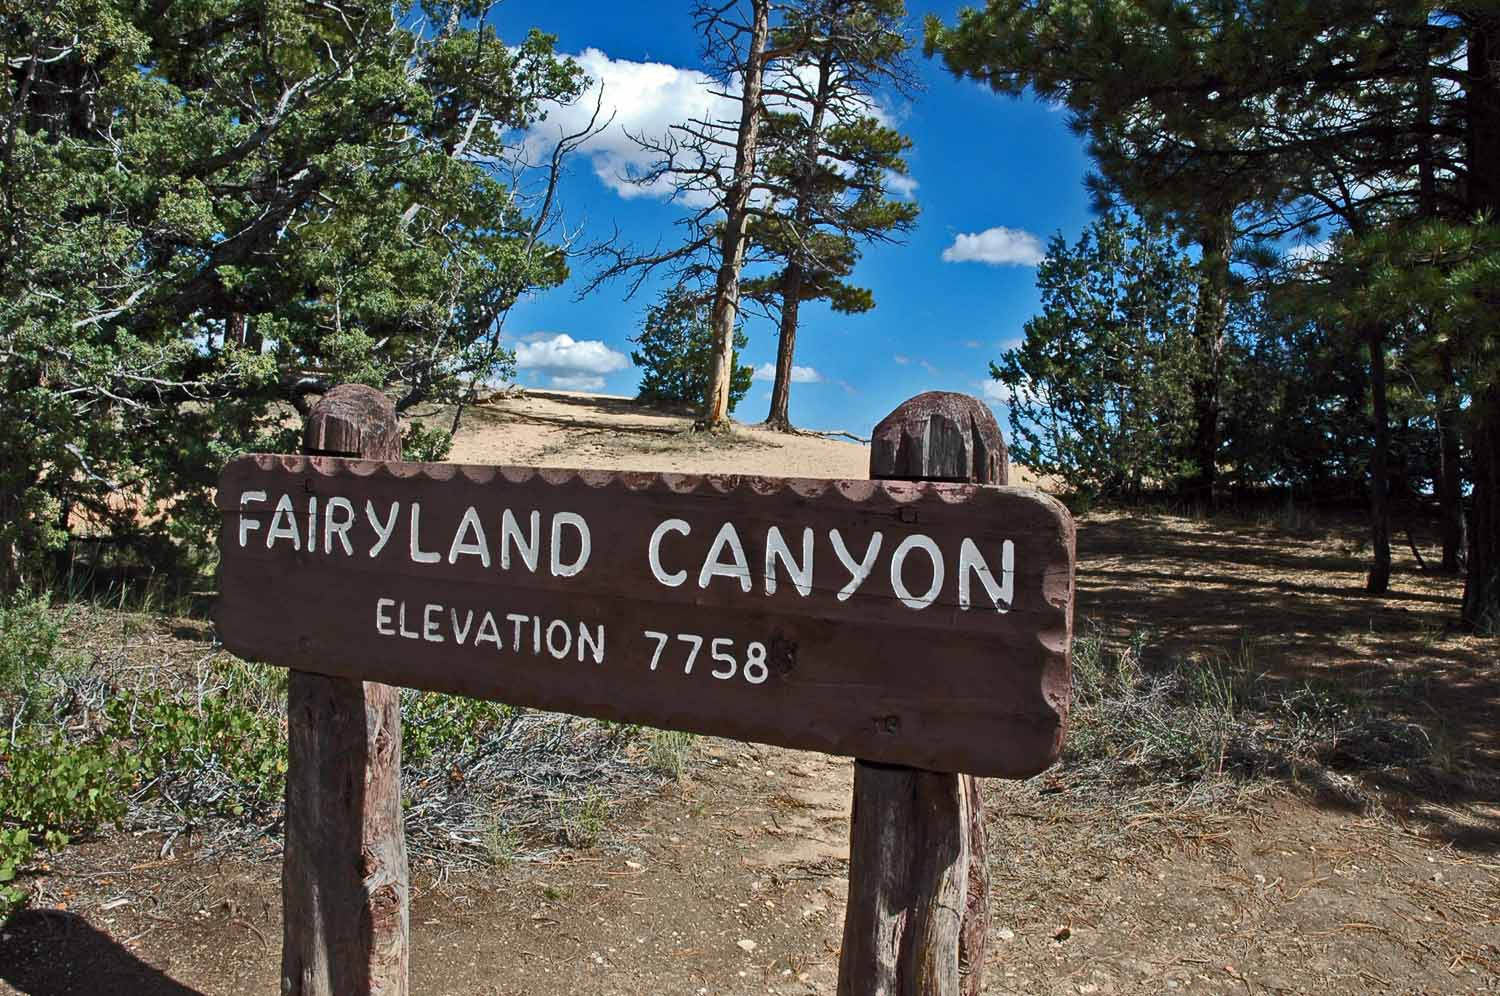 Fairyland Canyon hike - best hike to date...the breathtaking views never stop